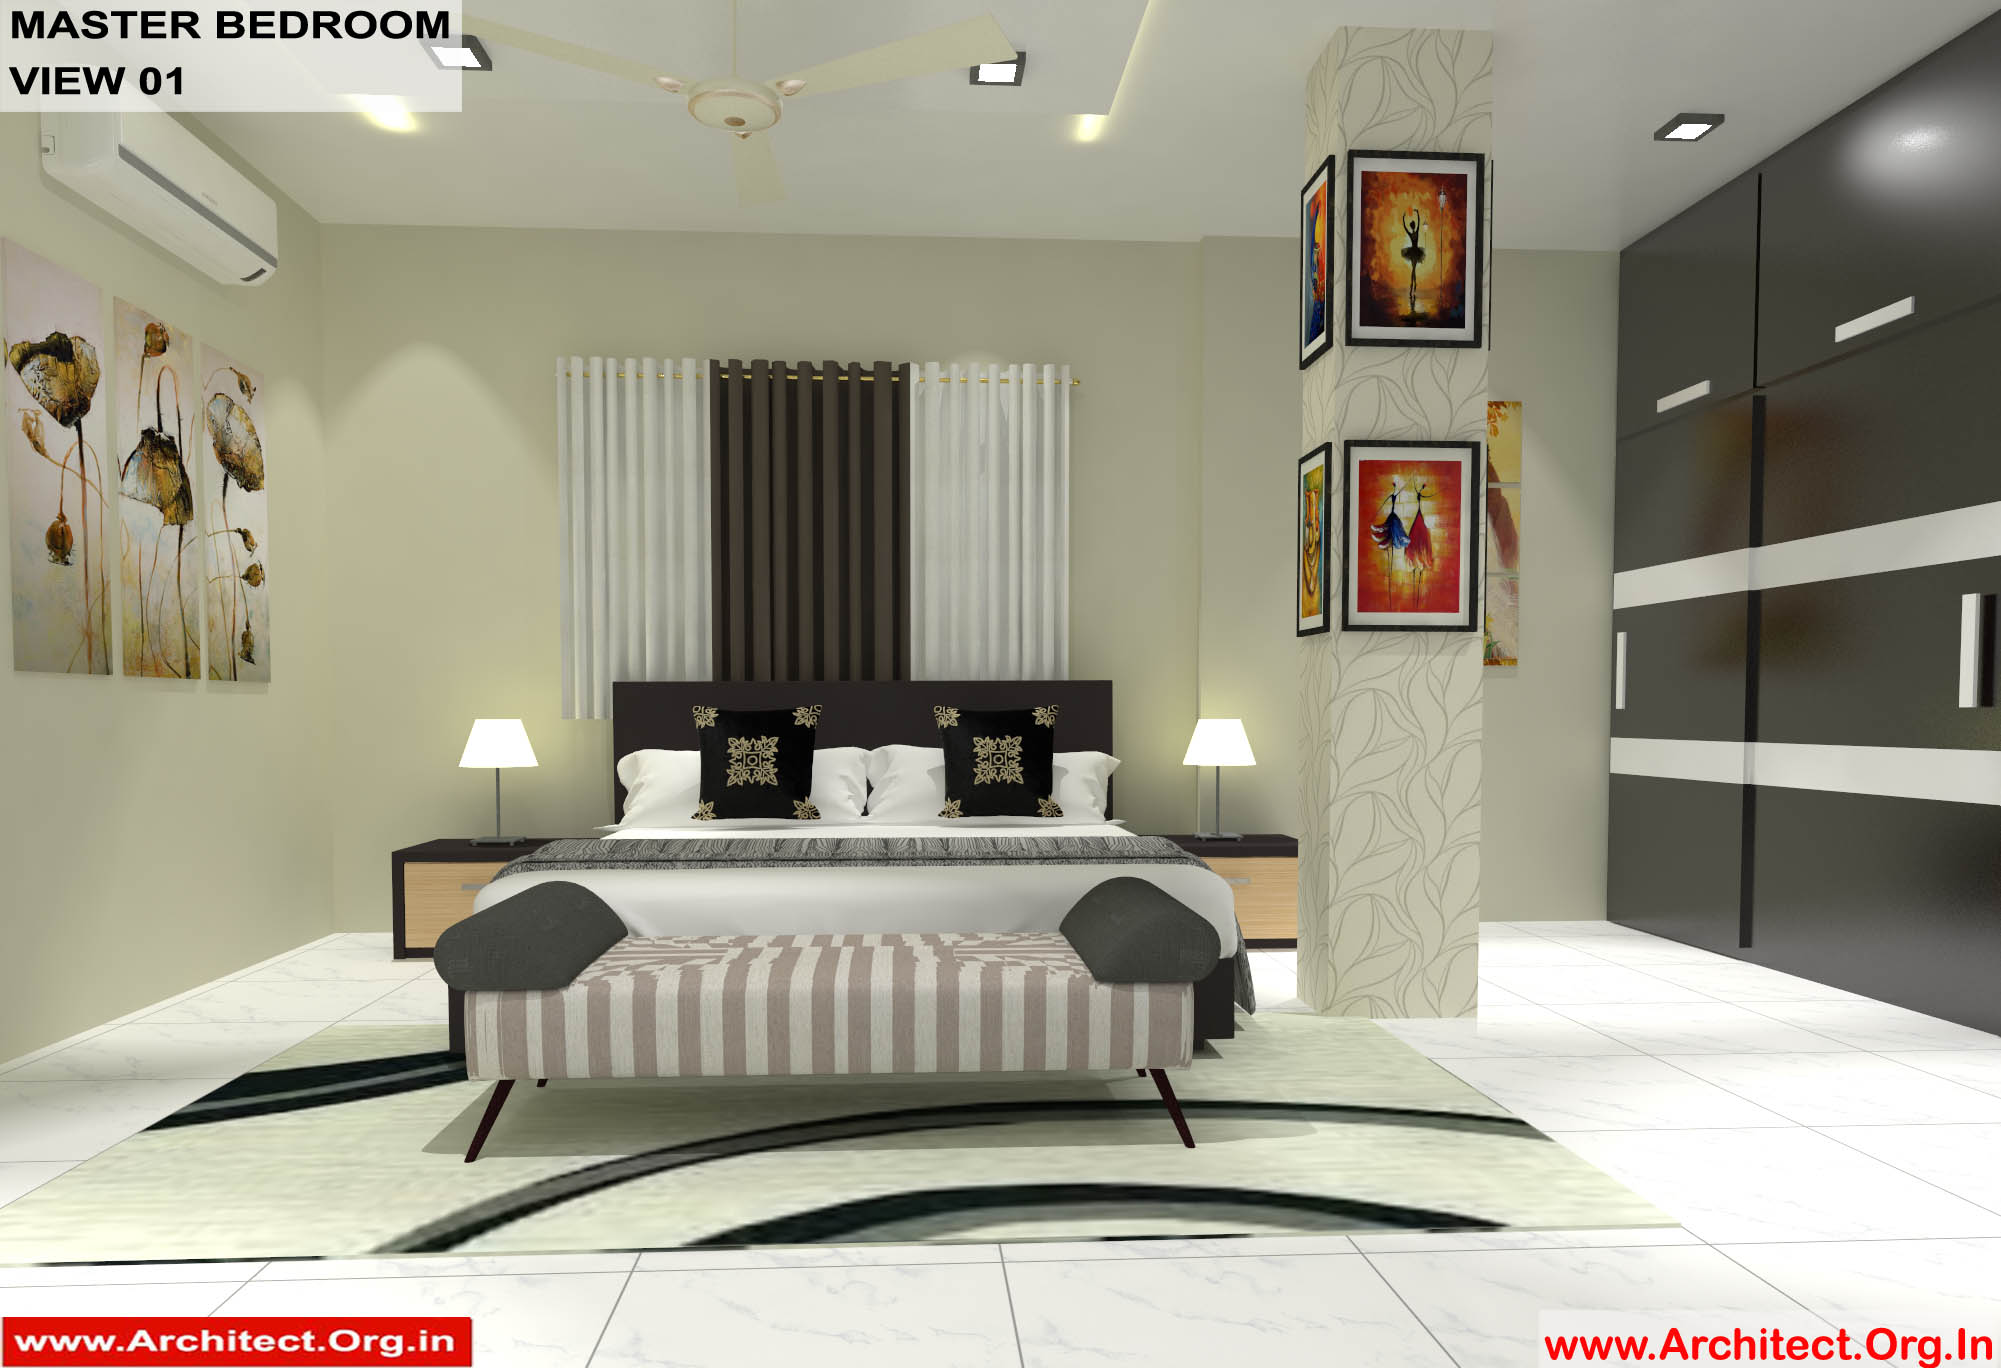 Dr Sandeep Ada Naidupet Andhra Pradesh House Interior Master Bedroom View 01 Rev Architect Org In